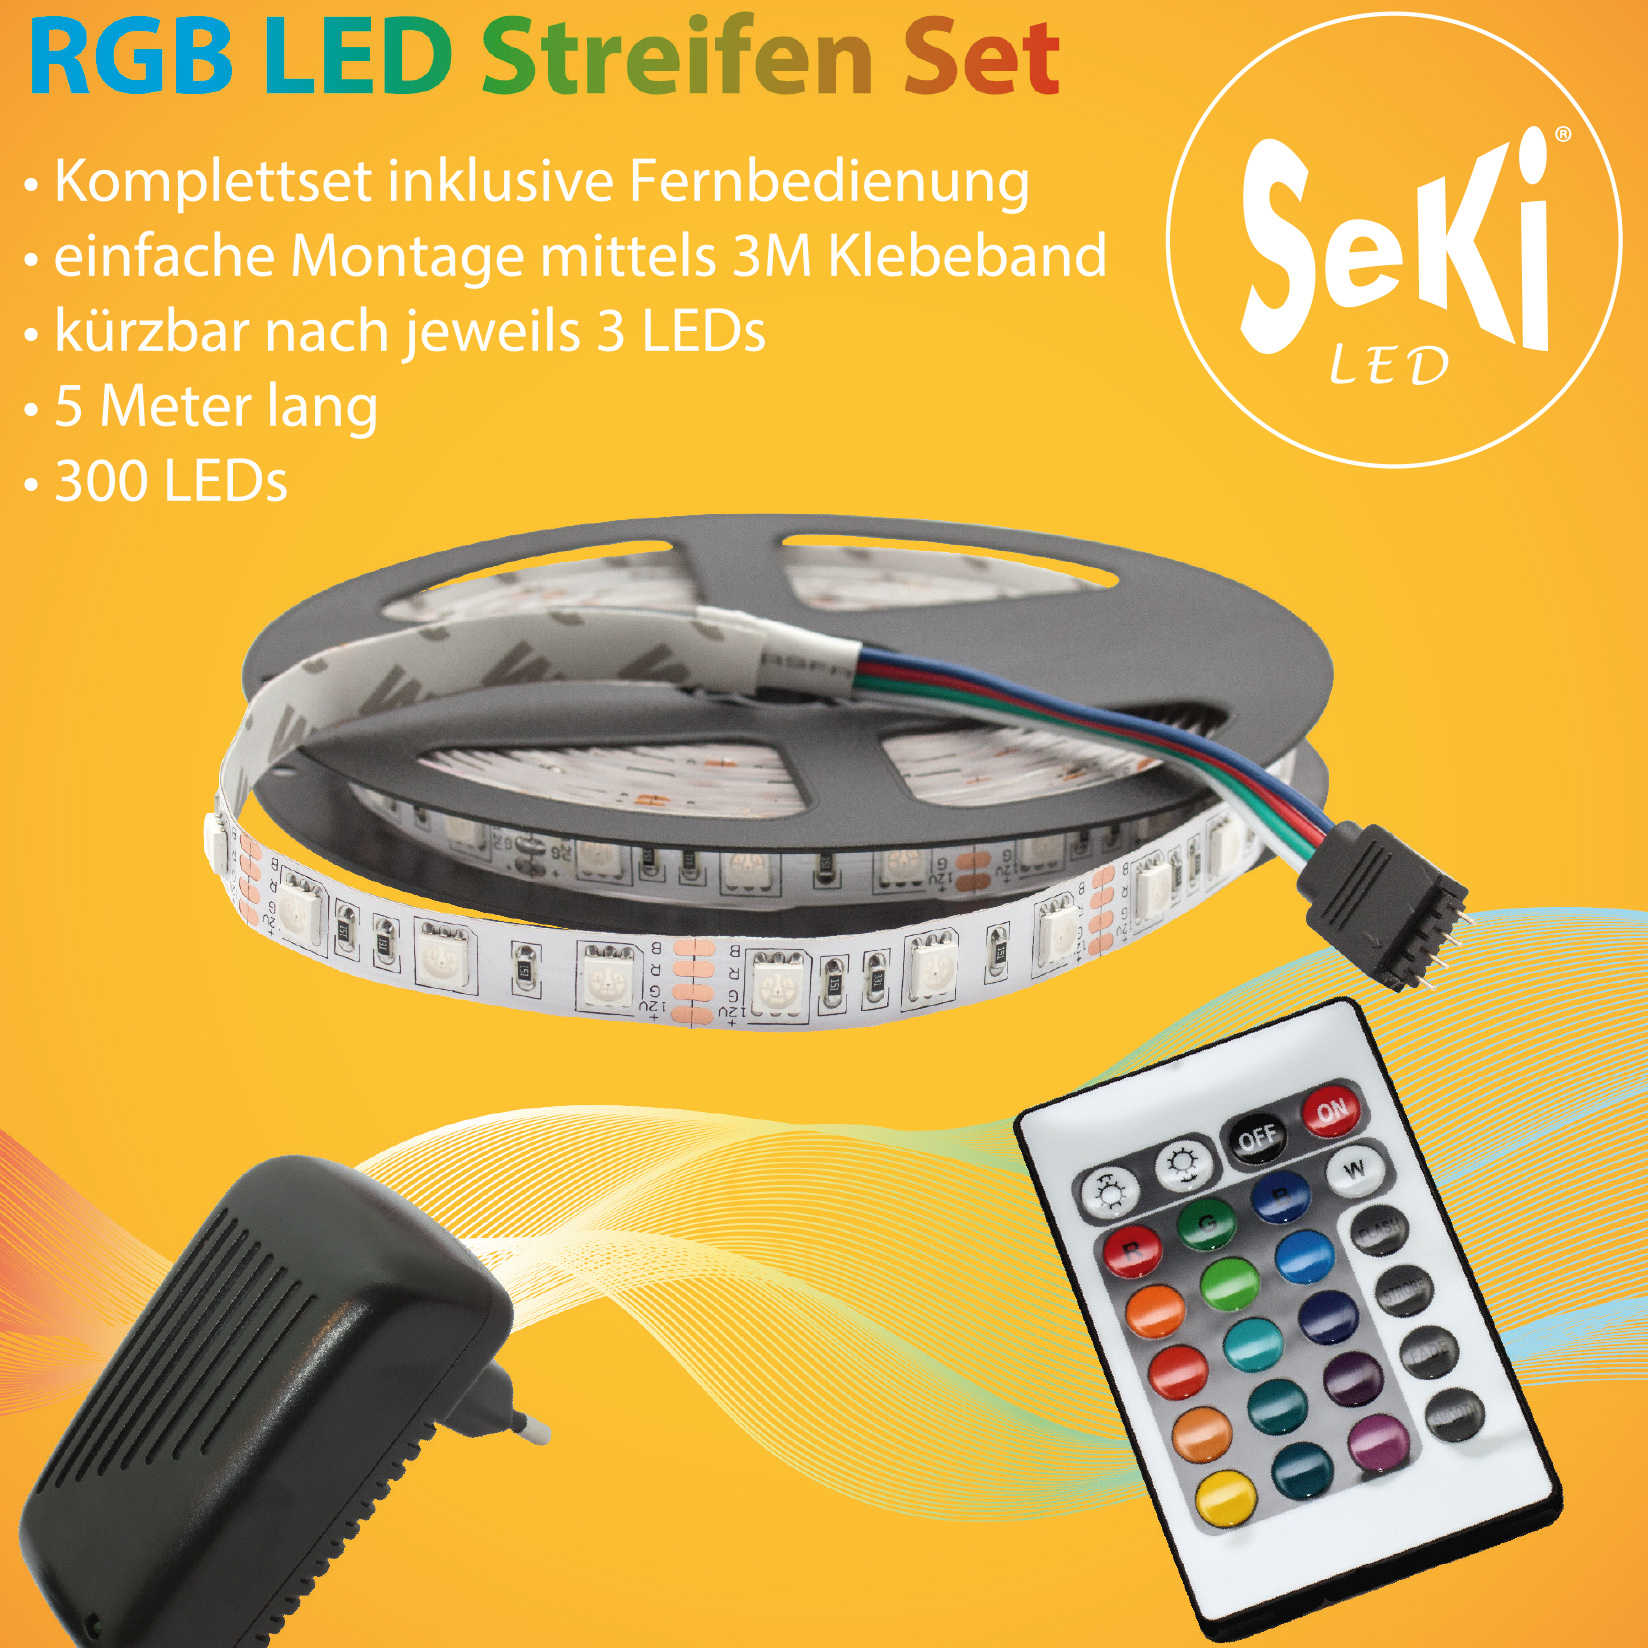 LED RGB Set 2 (RGB 300LEDs, Controller, Power Supply)